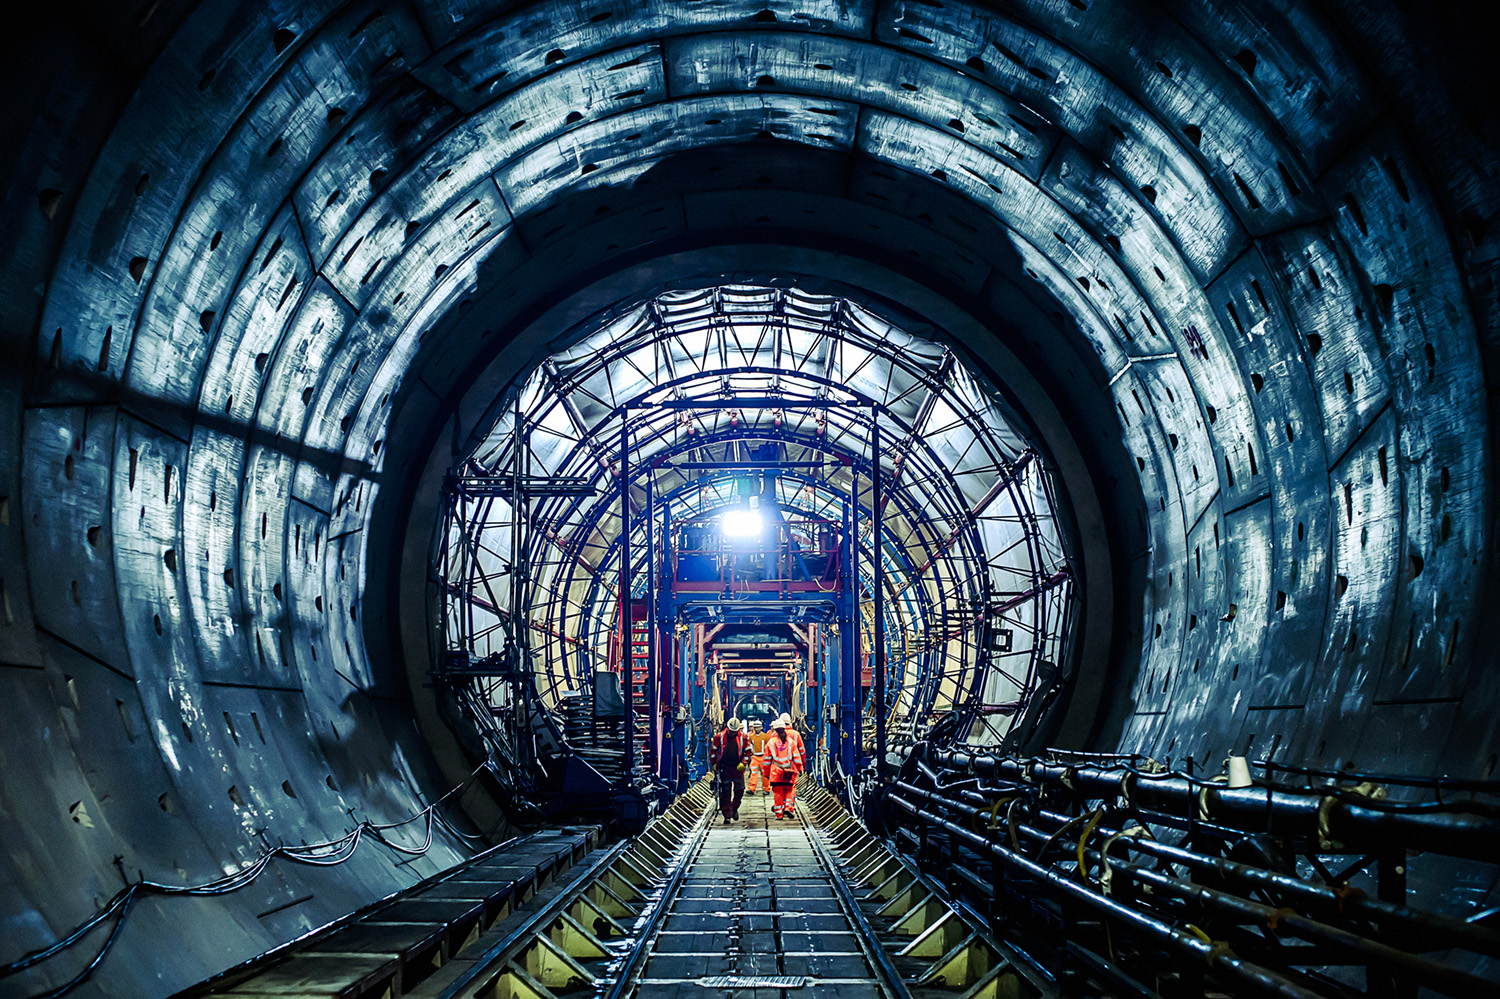 Lee Tunnel RICS infrastructure photographer of year 2016